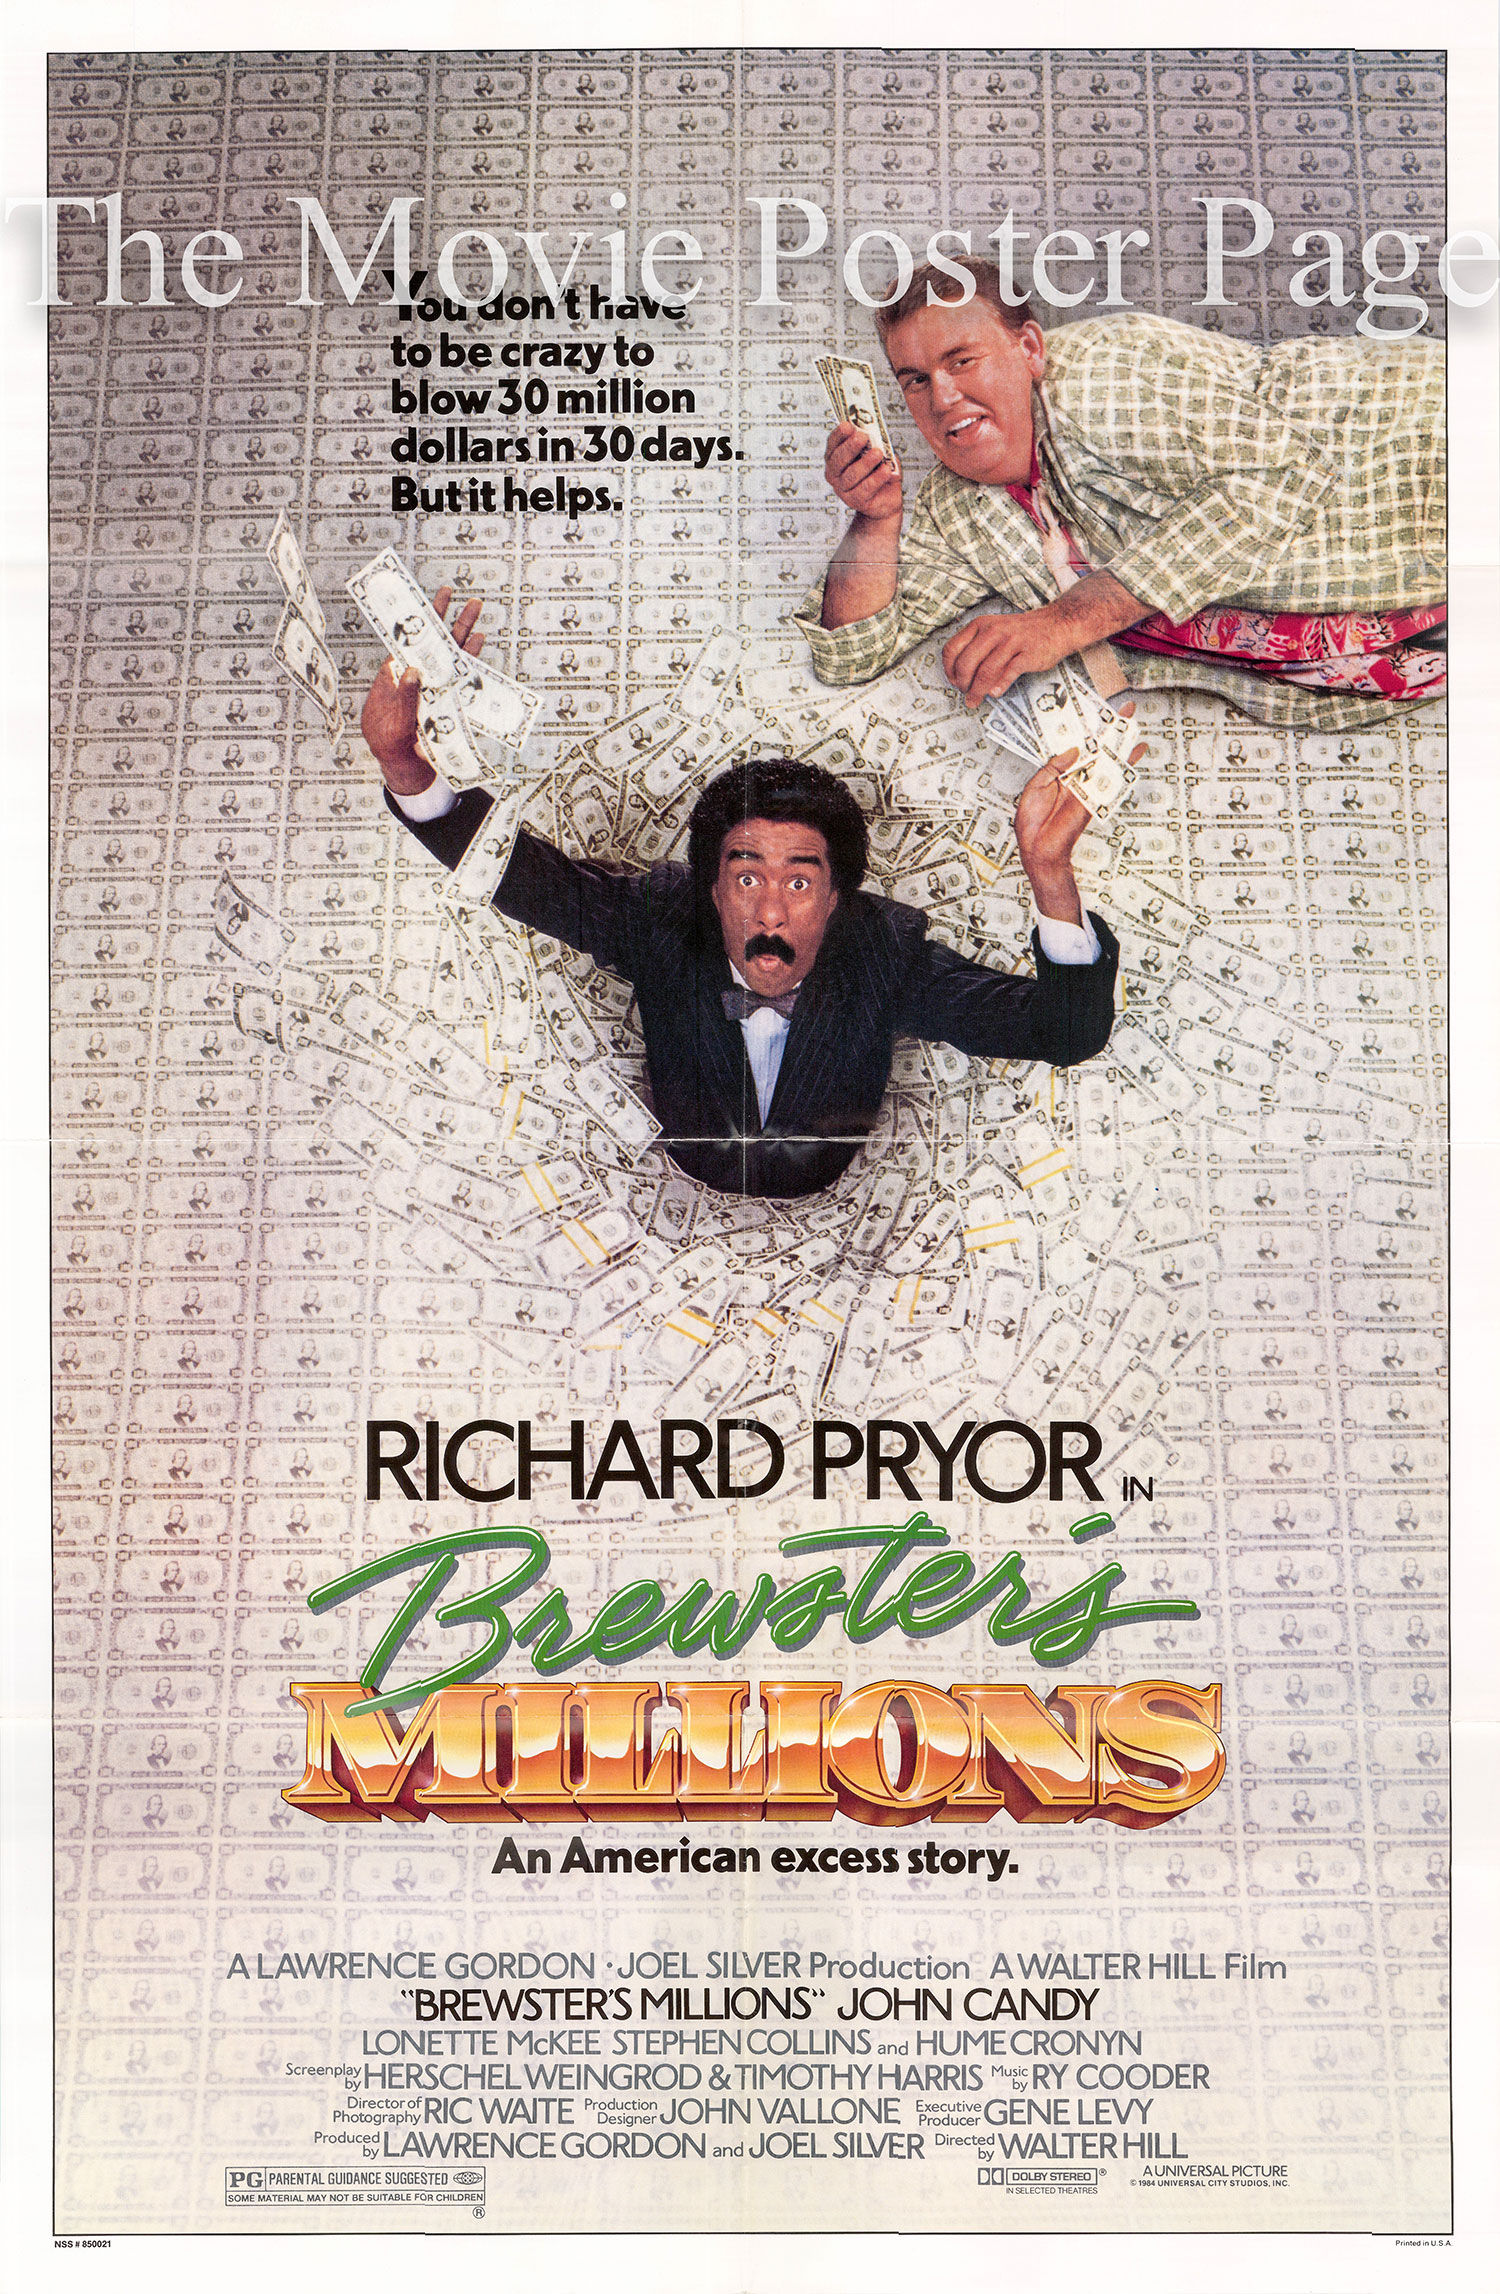 Pictured is a US one-sheet promotional poster for the 1985 Walter Hill film Brewster's Millions starring Richard Pryor and John Candy.